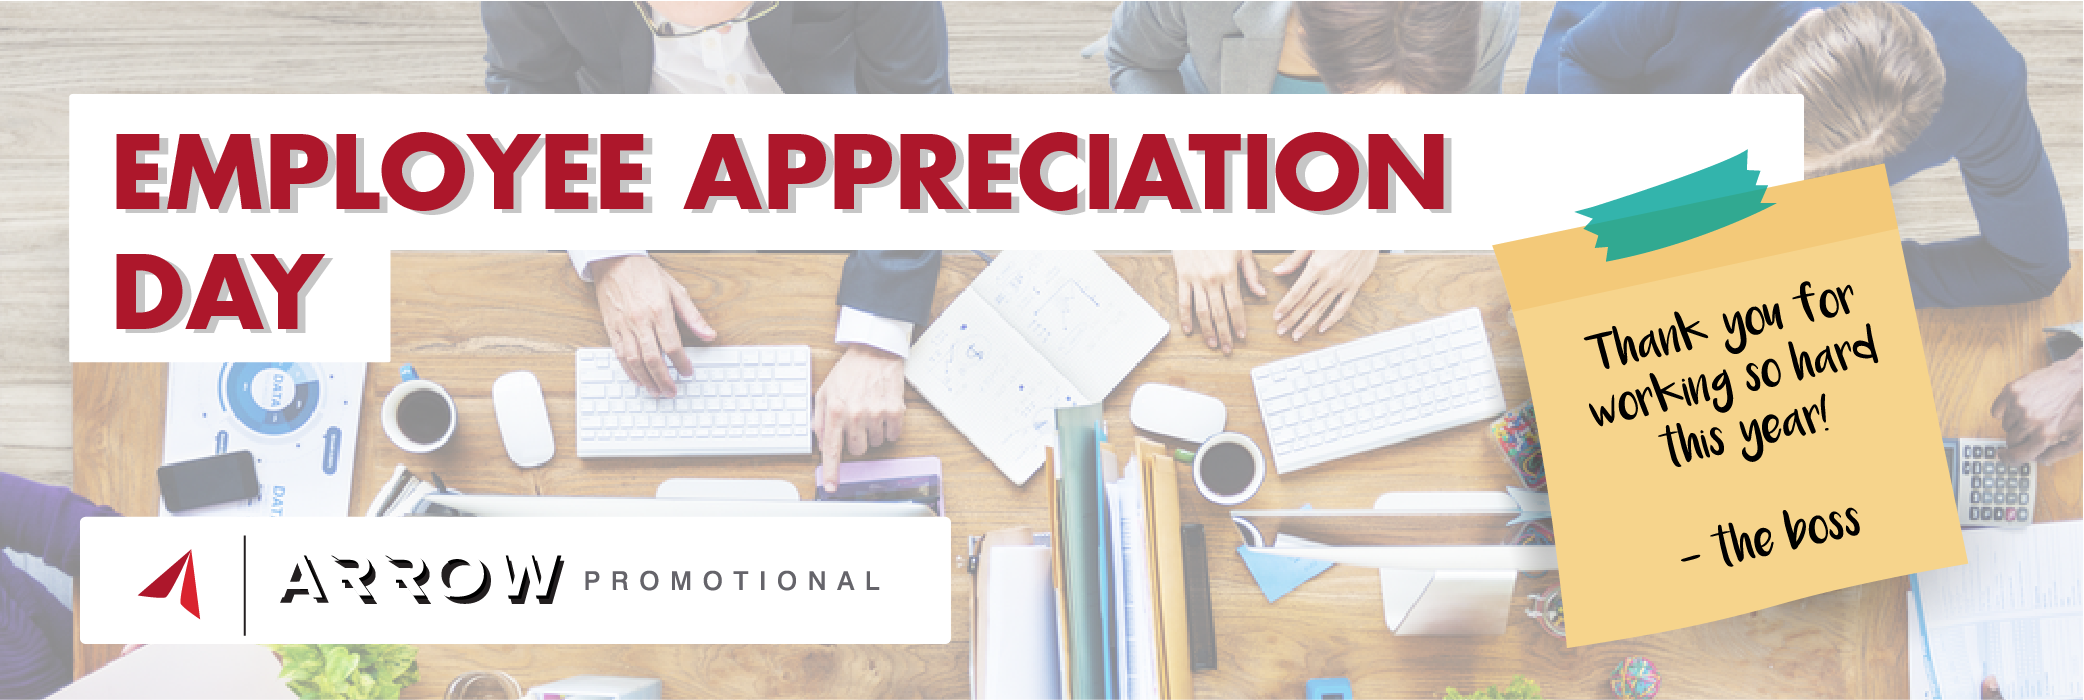 Arrow Promotional, Employee Appreciation Day, Employee Appreciation, Employees, Promotional Products, Corporate Gifts, Employee Gifts